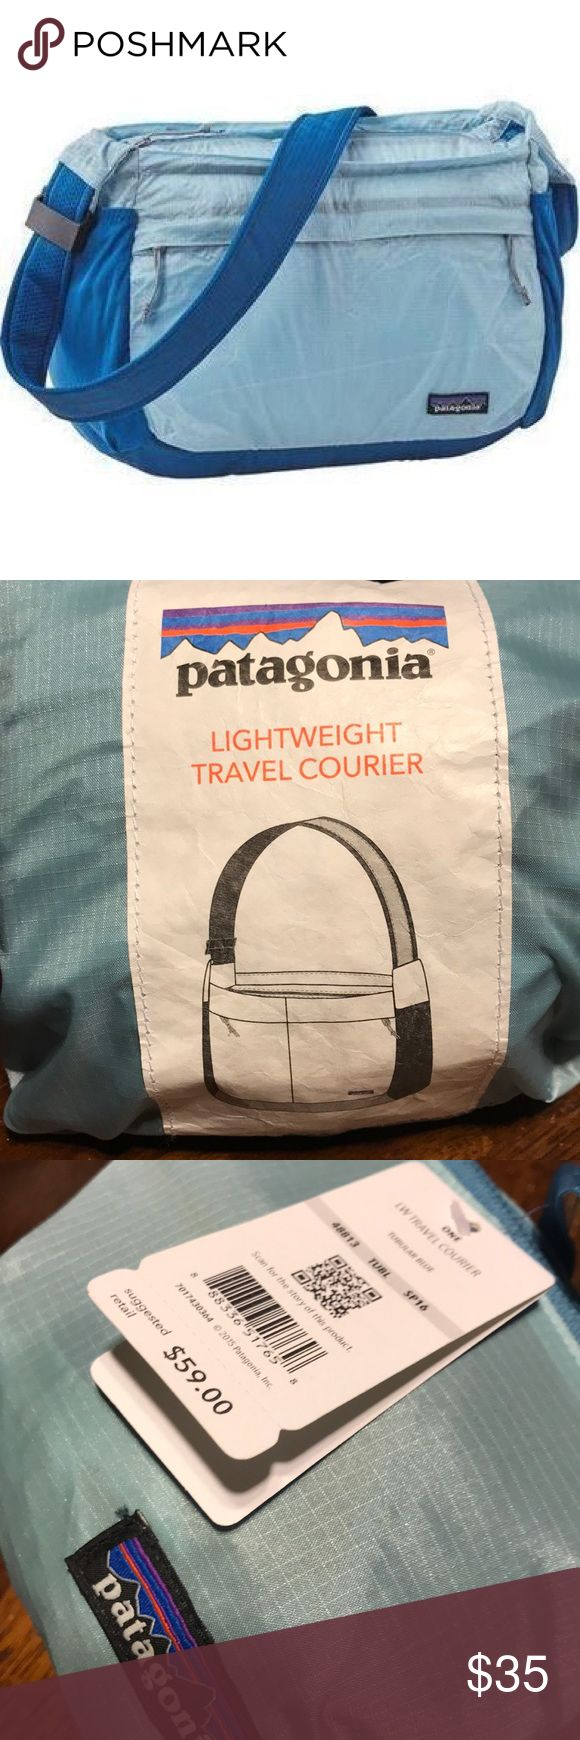 Patagonia Lightweight 15L Travel Courier Used once but tags are still attached. Weather resistant. Patagonia Bags